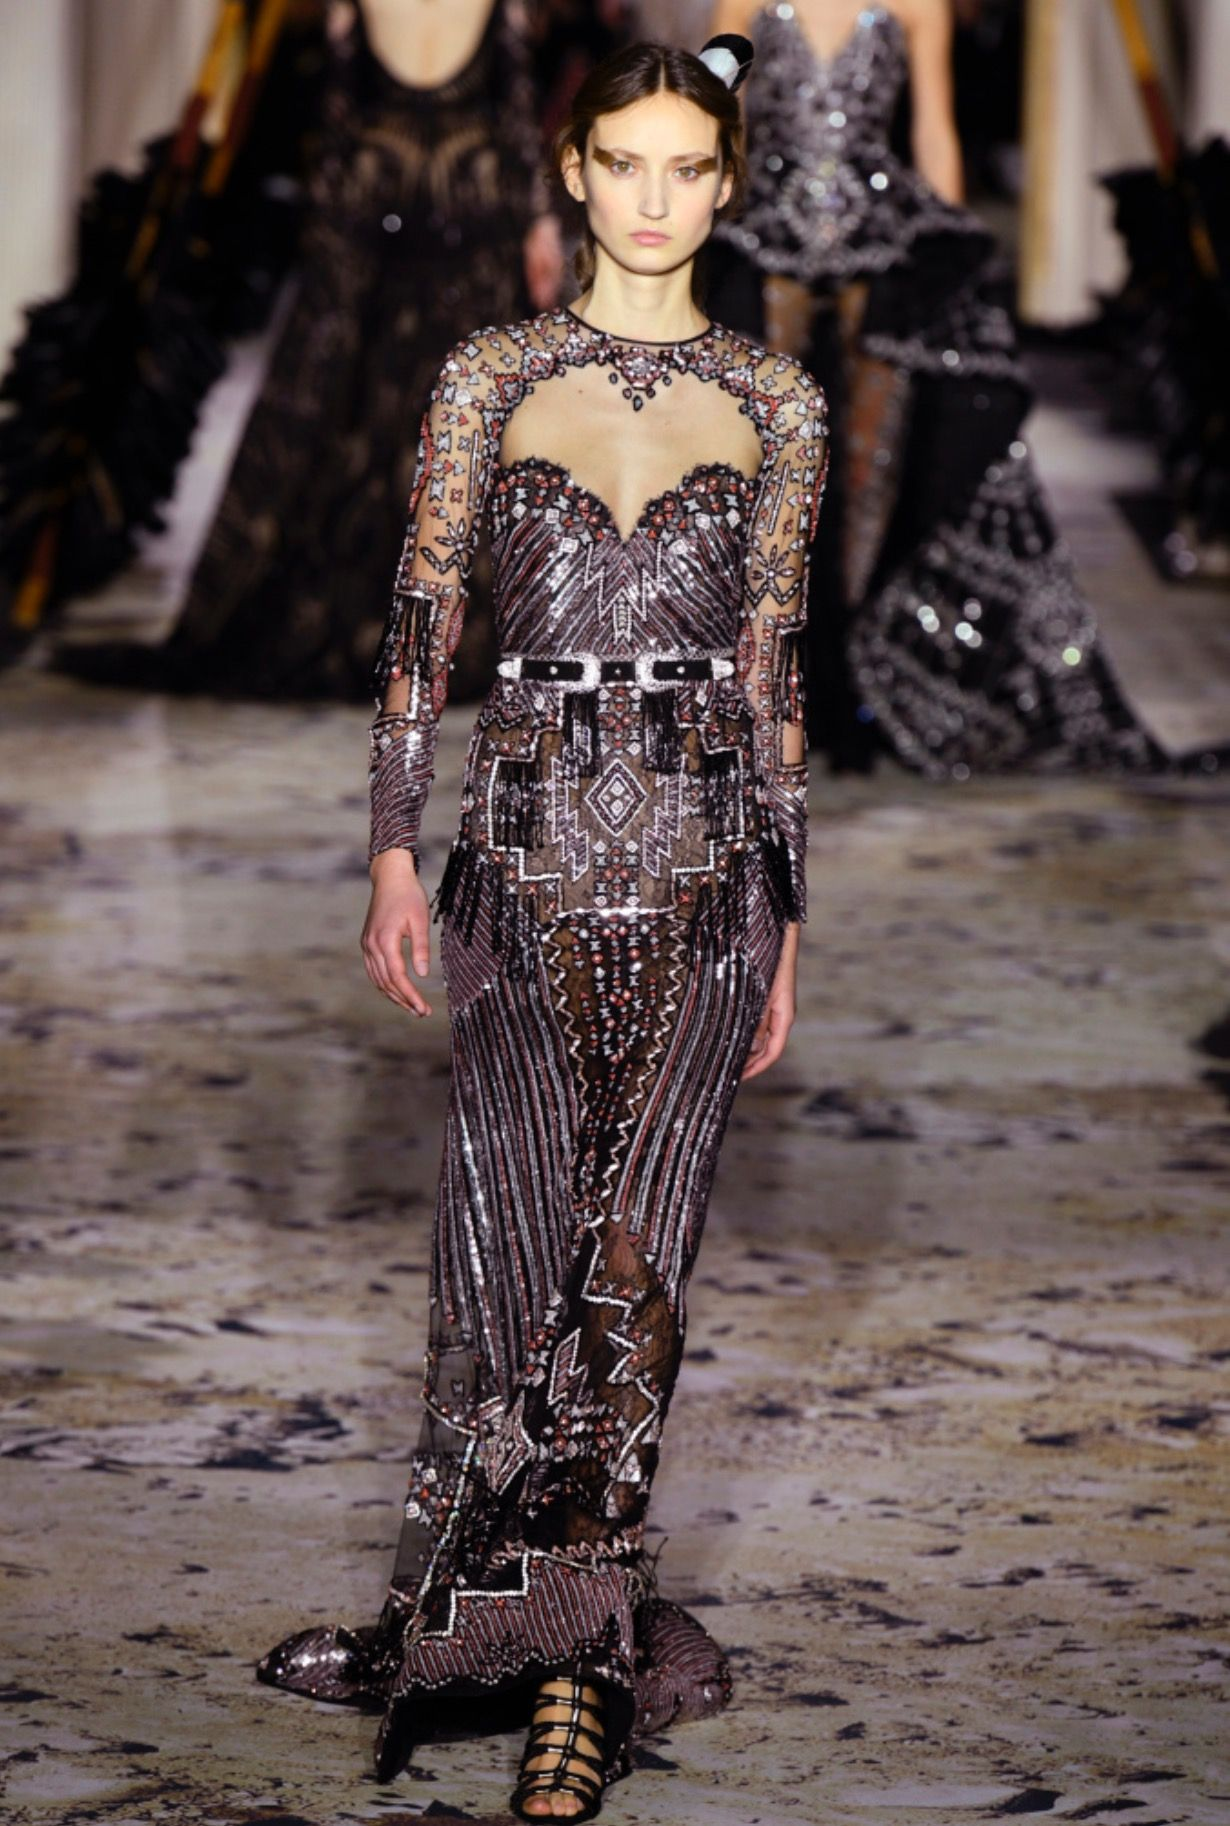 Pin by Lex on Style | Couture, Fashion, Zuhair murad